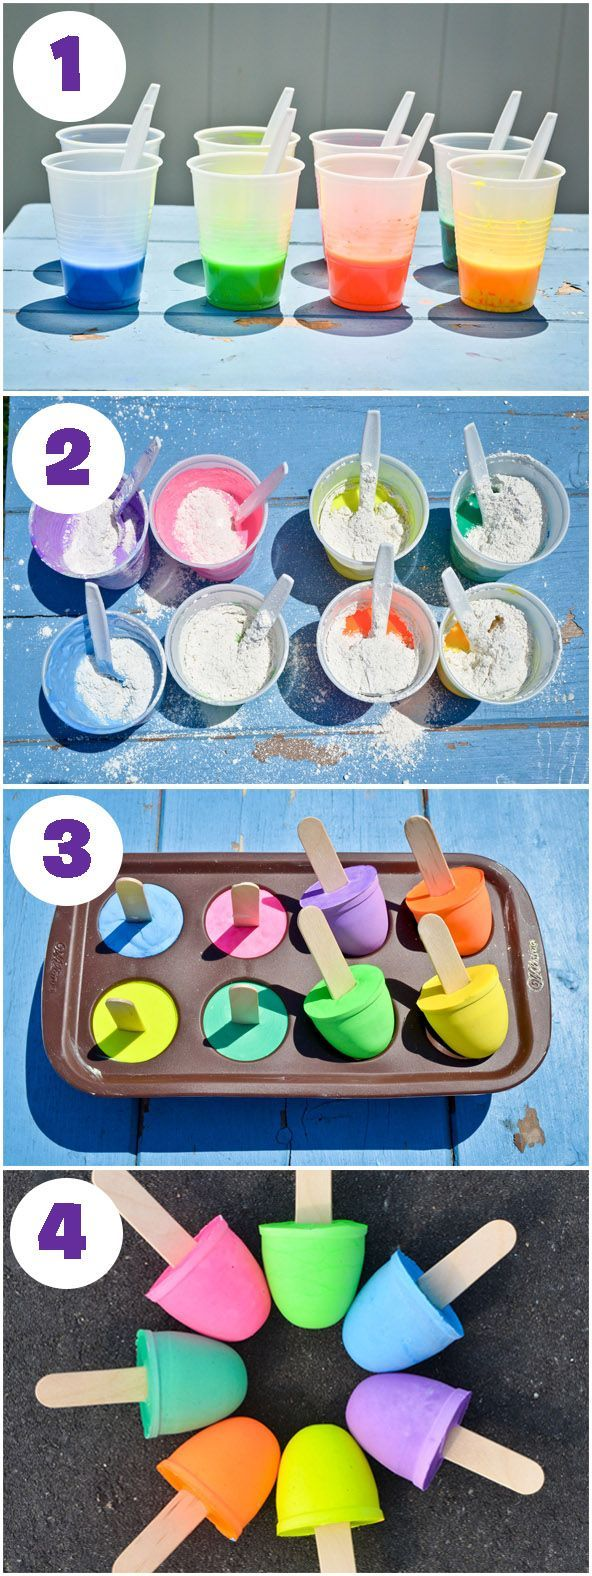 Give your budding graffiti artist the finest gear this spring with these DIY Sidewalk Chalk Pops. Your toddler will doodle for days with these homemade craft supplies. Have your kiddo take note that while these chalk pops may look like delicious lollipops